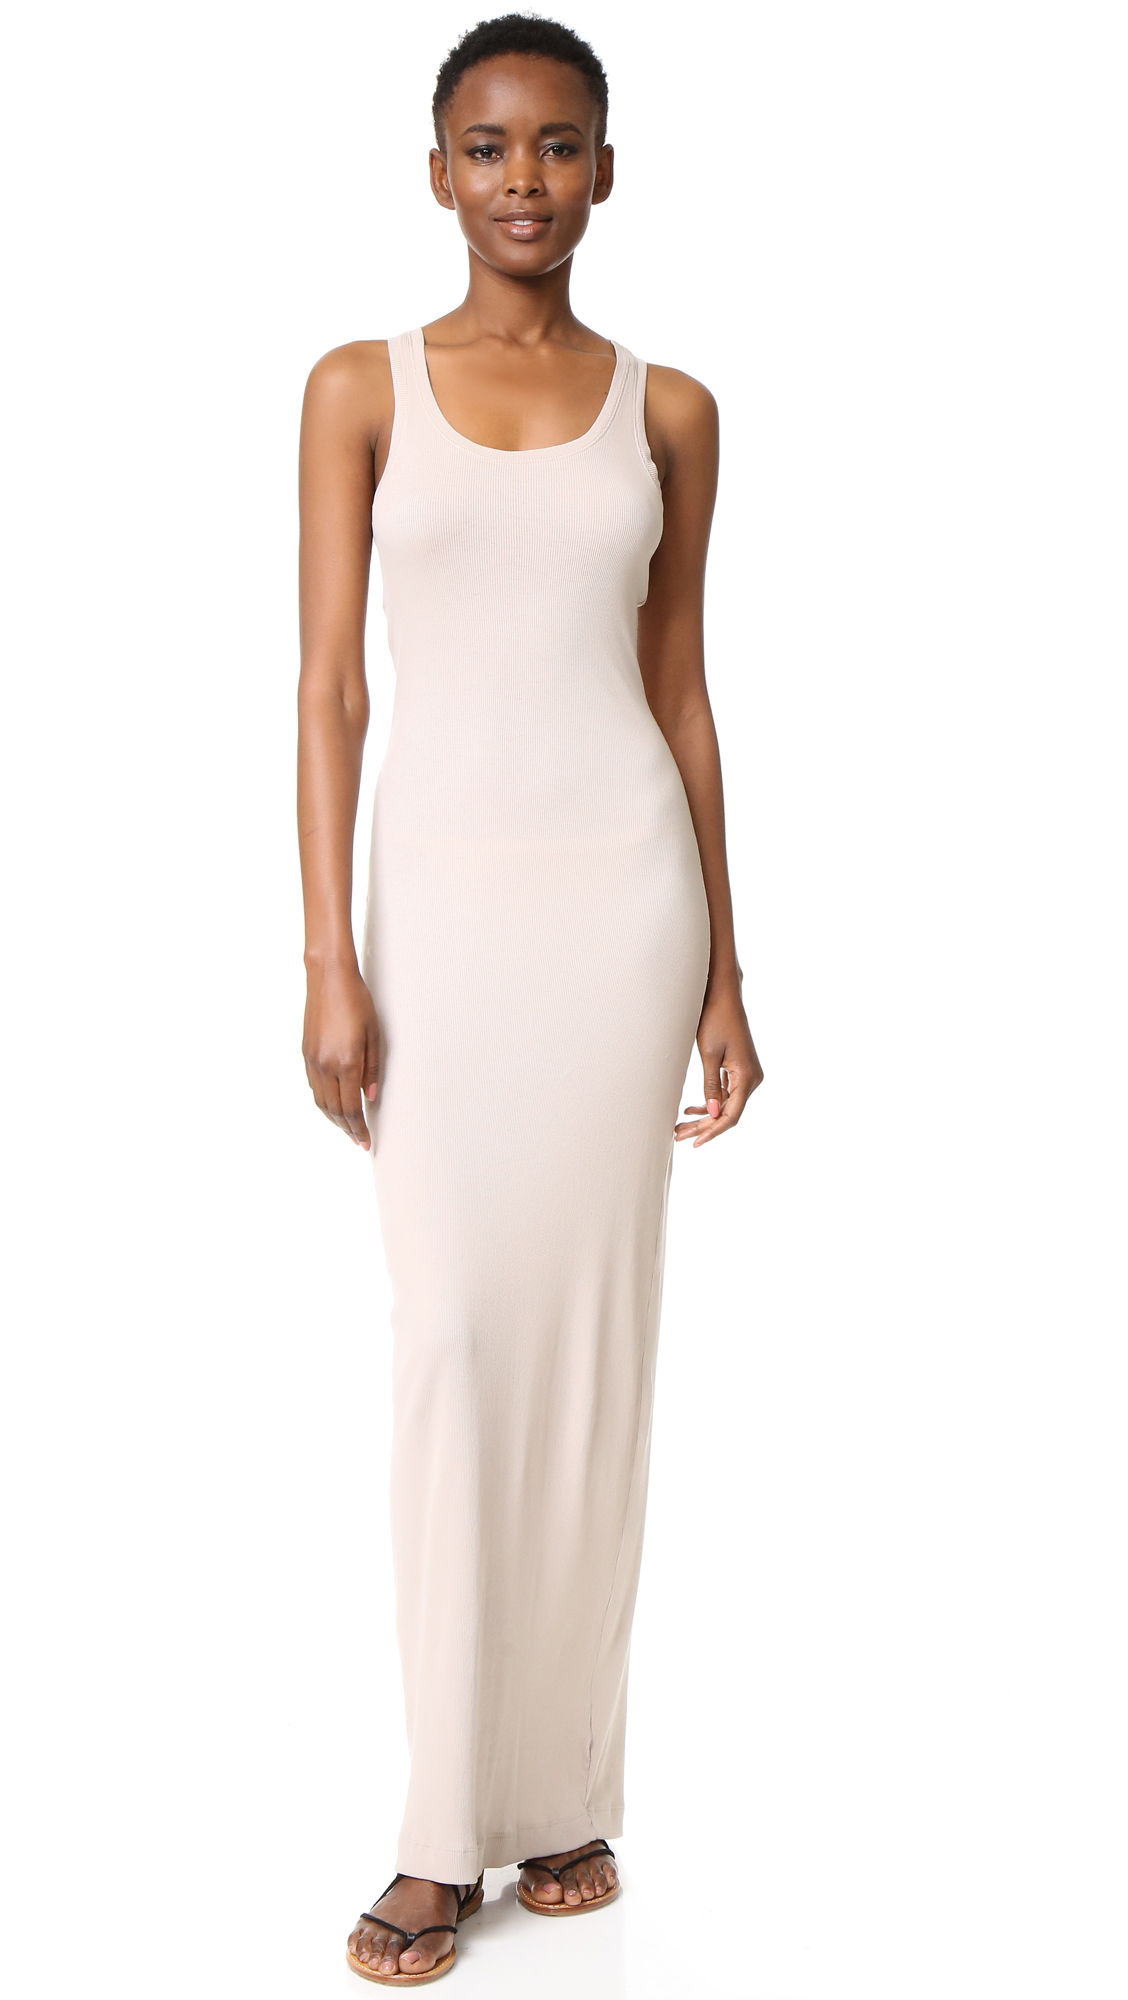 Splendid Ribbed Maxi Dress - Almond